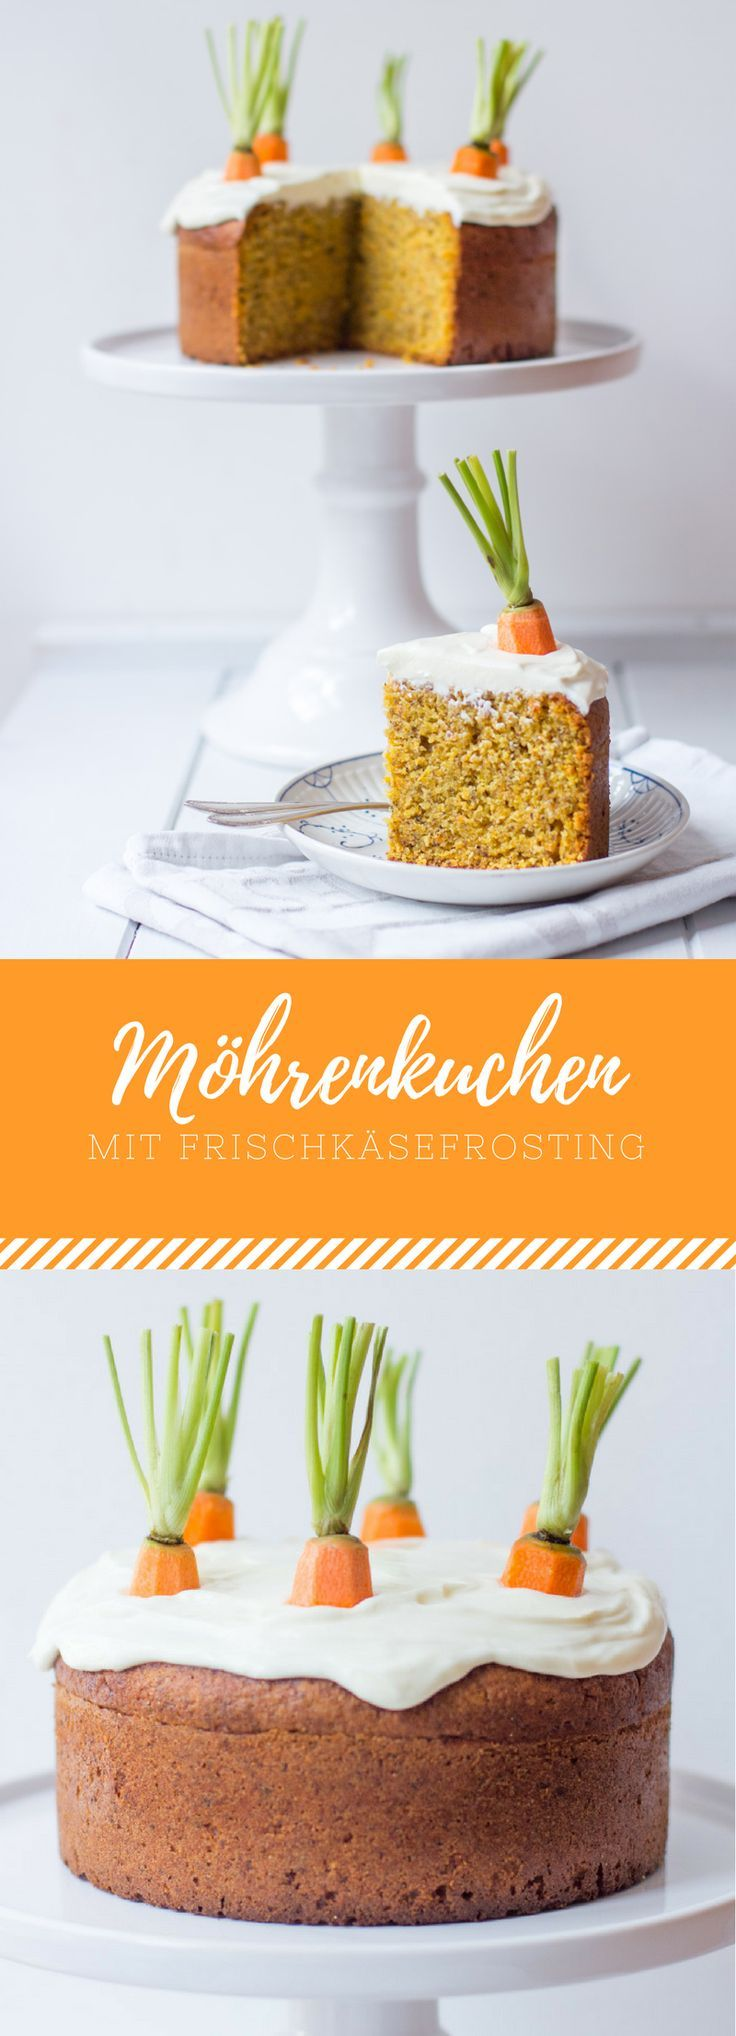 Carrot cake / Carrot cake / Rüblikuchen with cream cheese frosting. Perfect for…